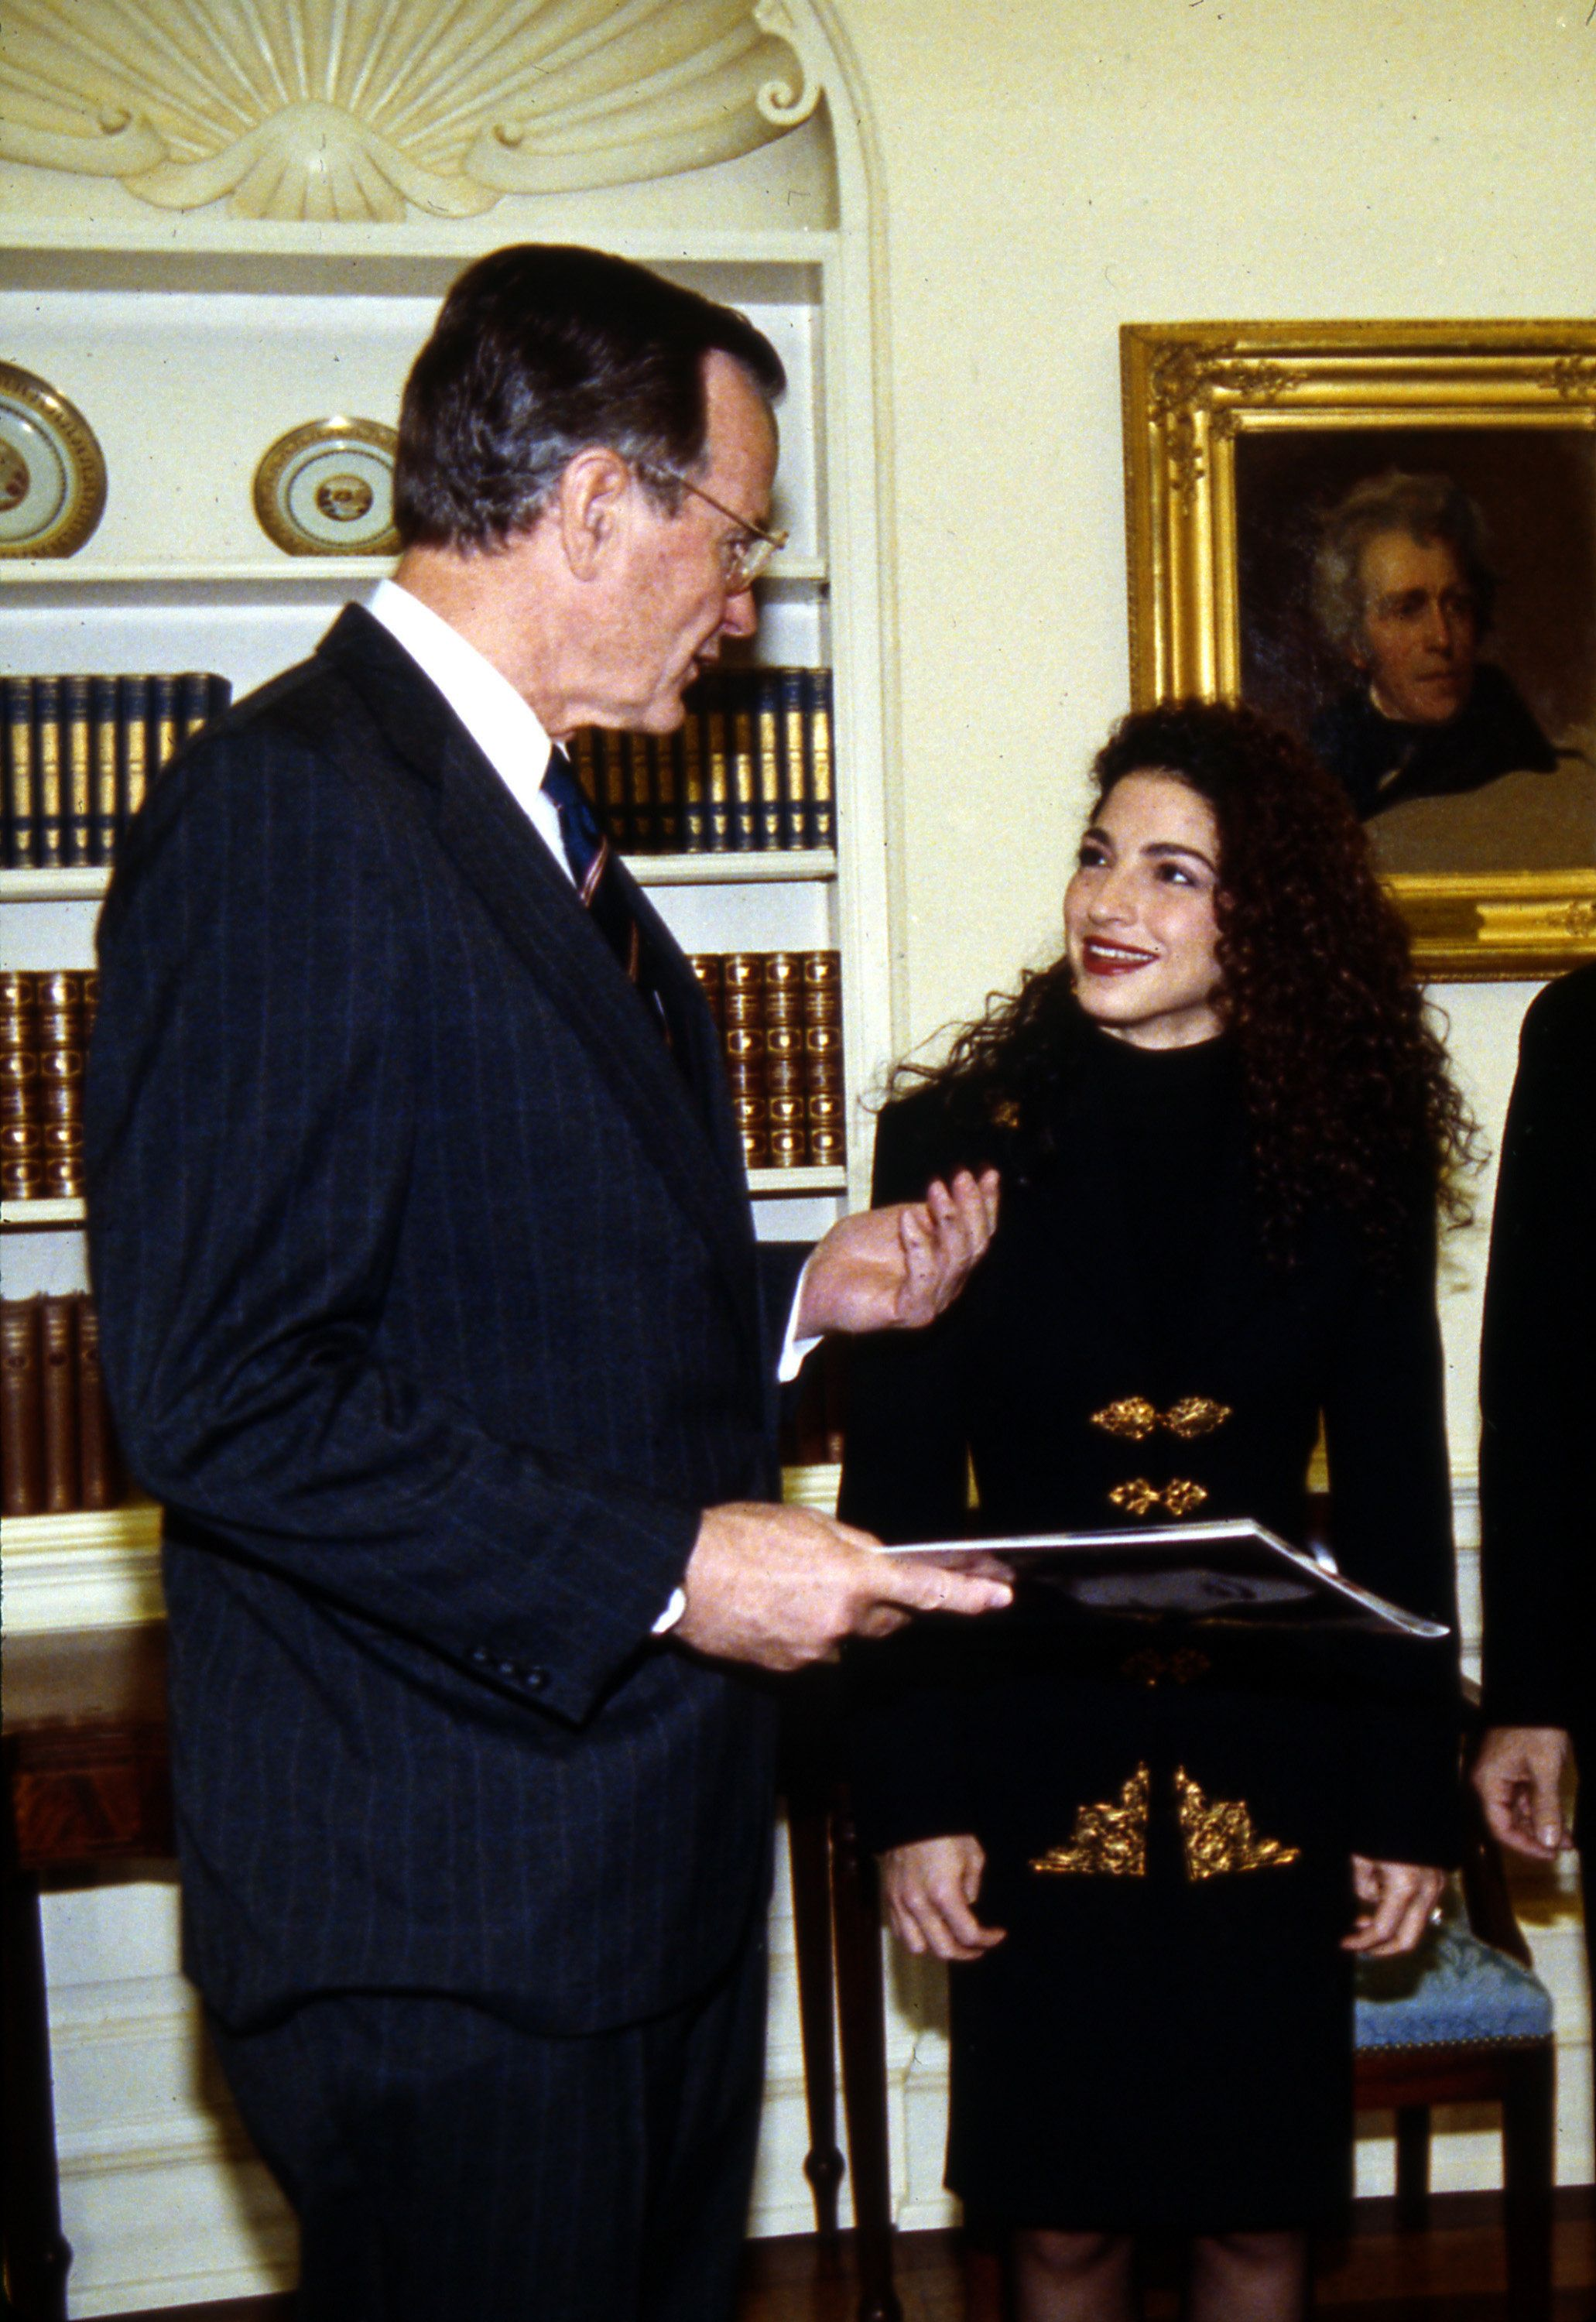 Cuban born U.S. American singer Gloria Estefan, of the group Miami Sound Machine meets with President Bush Monday in the oval Office in the white House in Washington D.C., March 20, 1990. (AP Photo/Scott Applwhite)